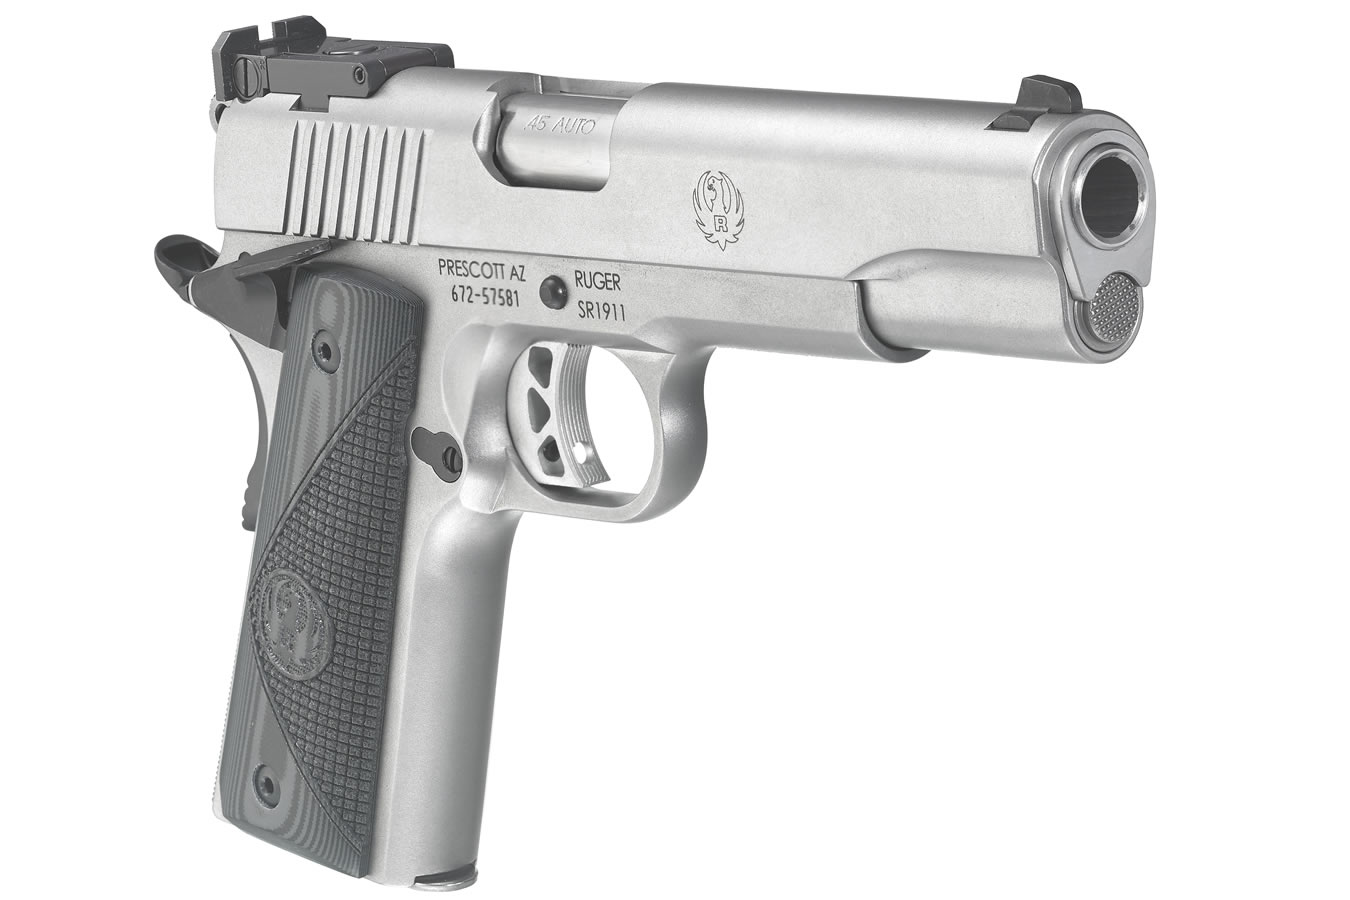 Ruger Sr1911 45acp Stainless Target With Bomar Style Adjustable Kimber 1911 Exploded Diagram In Stock And Ready To Ship